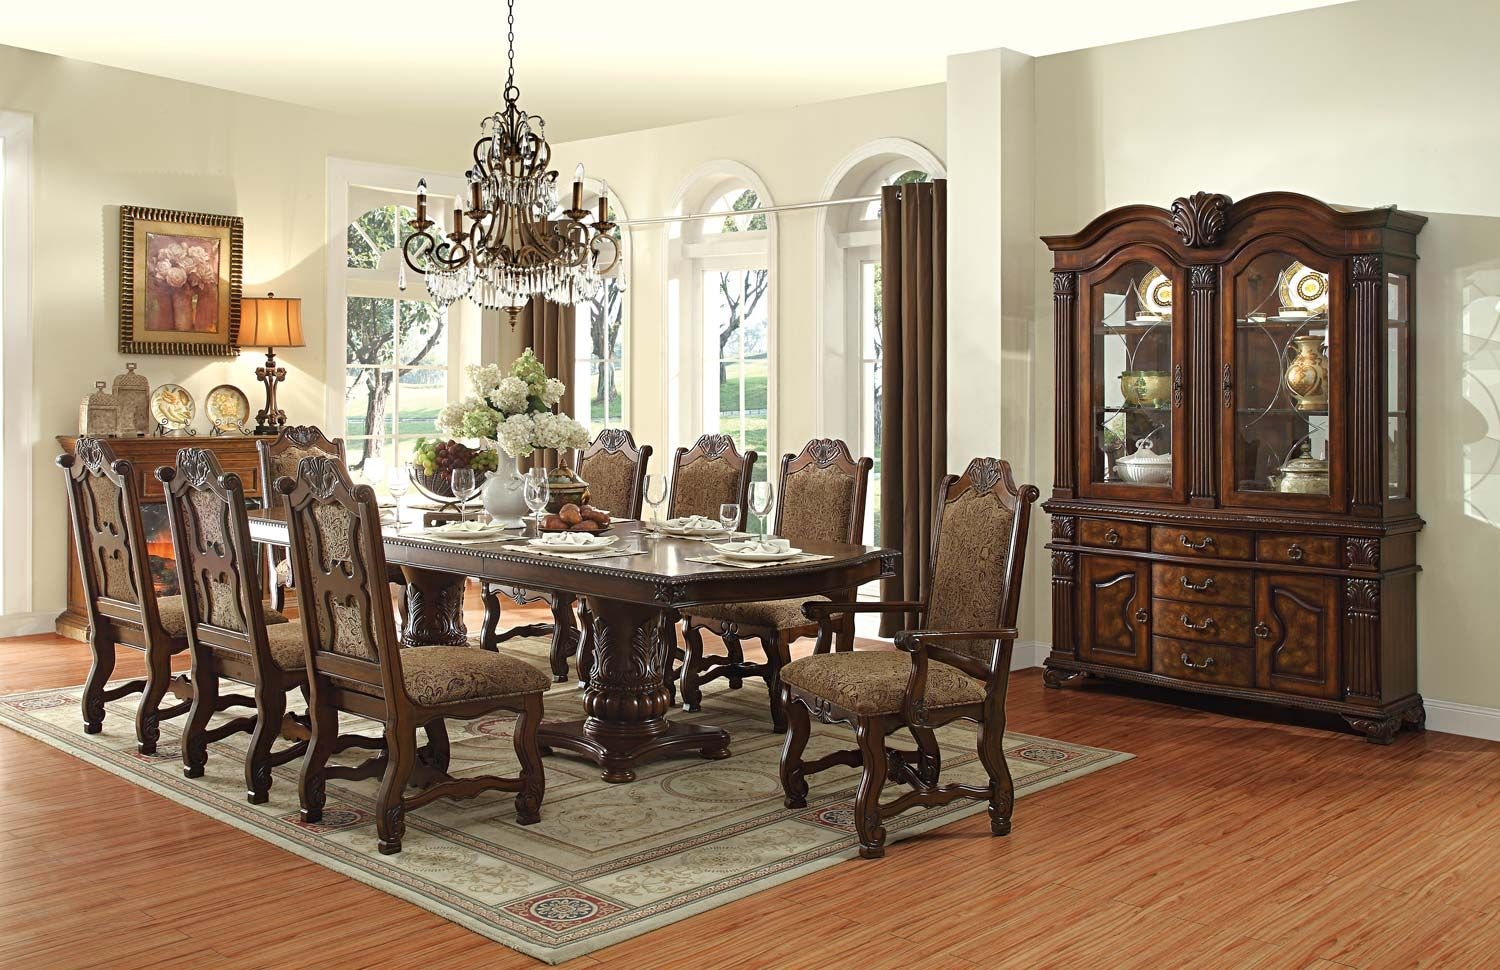 Homelegance Thurmont Double Pedestal Dining Set  Cherry  Stately Delectable 8 Piece Dining Room Set Decorating Design